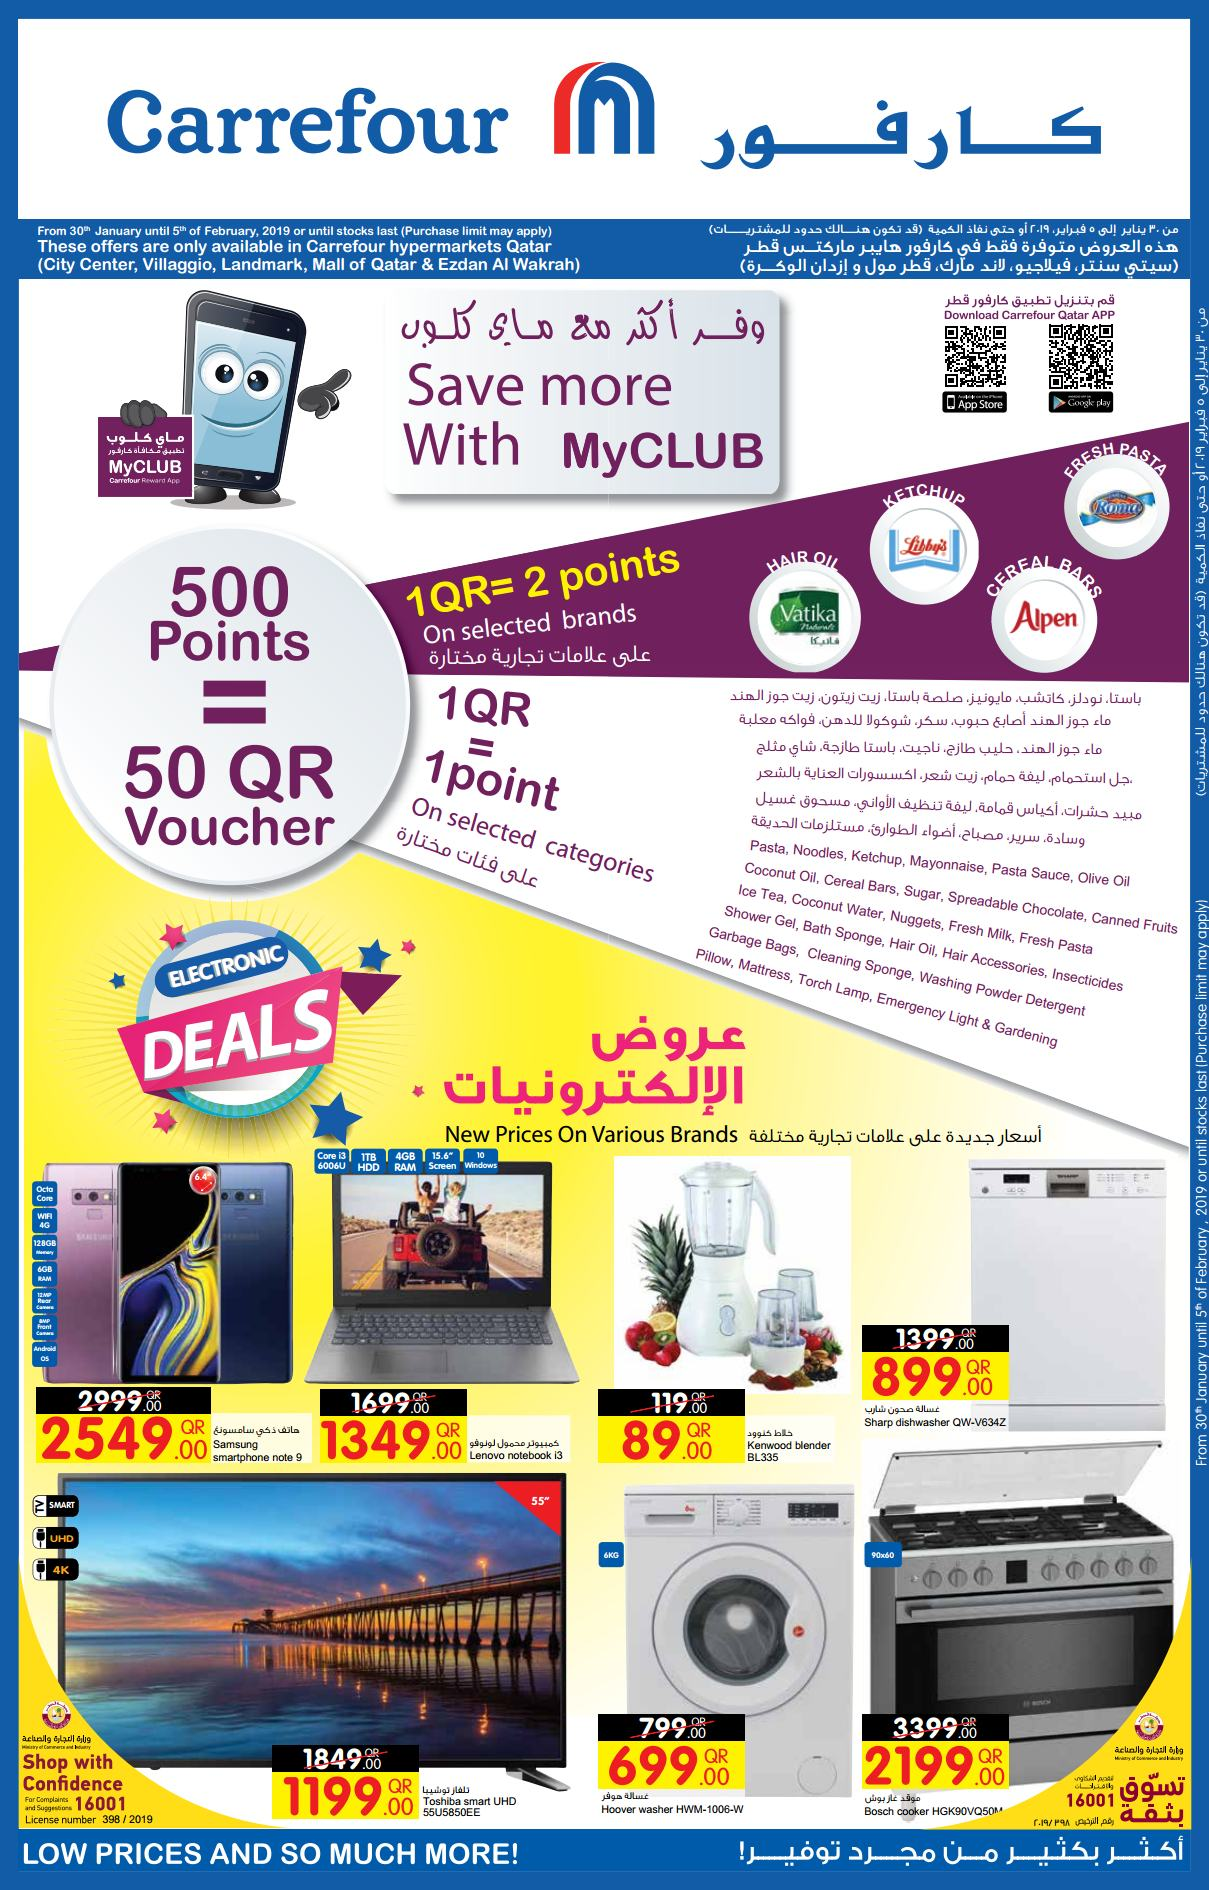 Carrefour Electronics deals till 05-02